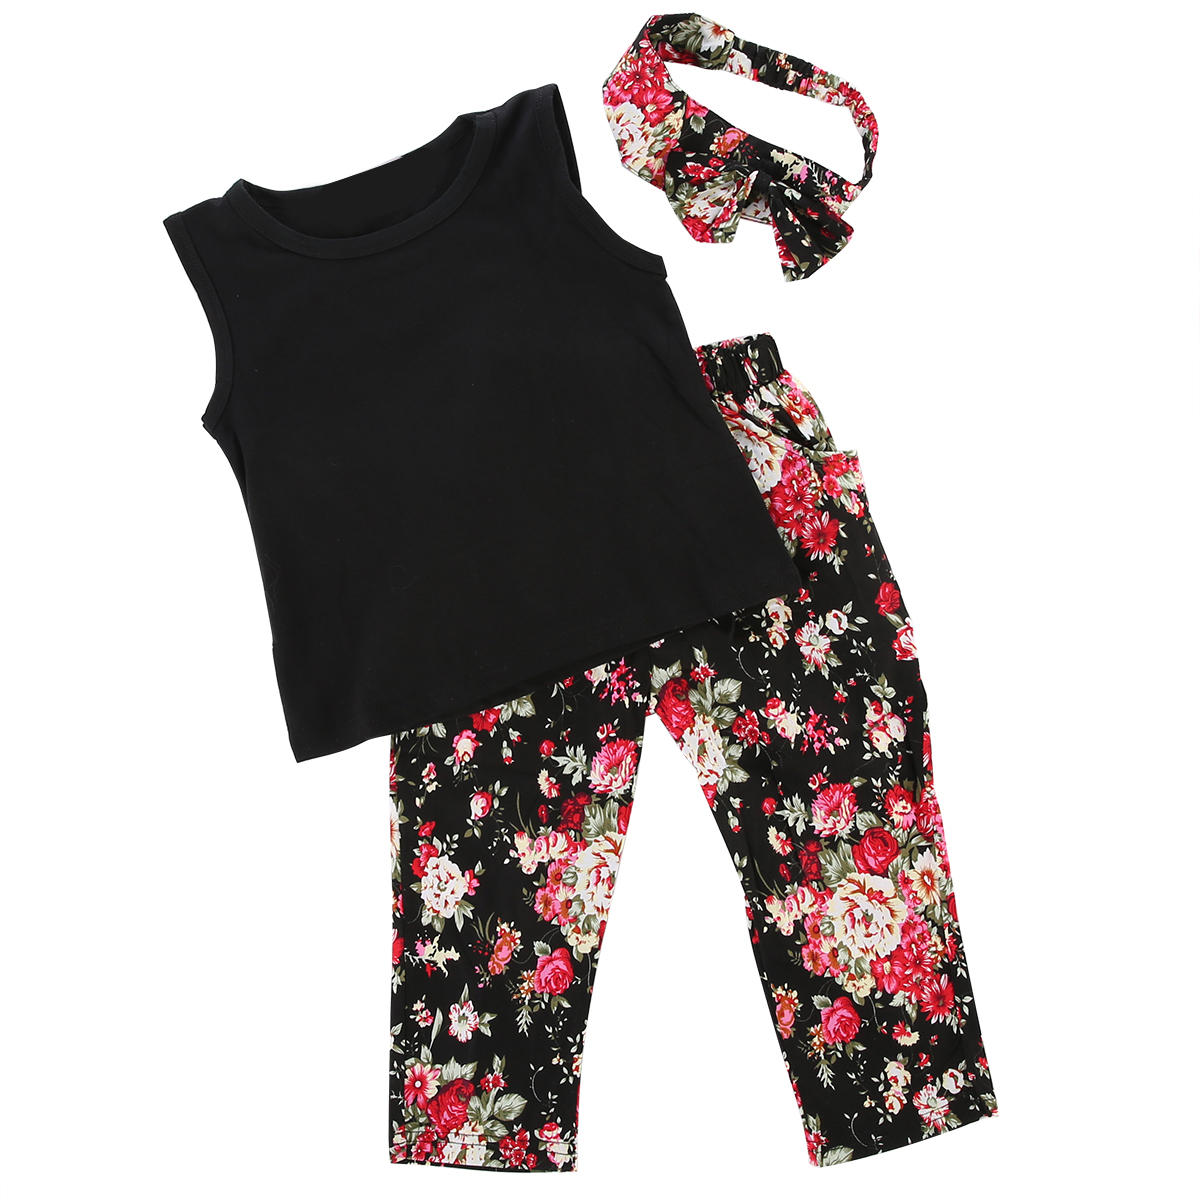 Summer New Fashion Kids Girls Baby 3PCS Set Floral Sleeve T-shirt Pants Headband Cute Stylish Kid Girl Outfits Clothes Age 2-8T 3pcs outfit infantil girls clothes toddler baby girl plaid ruffled tops kids girls denim shorts cute headband summer outfits set